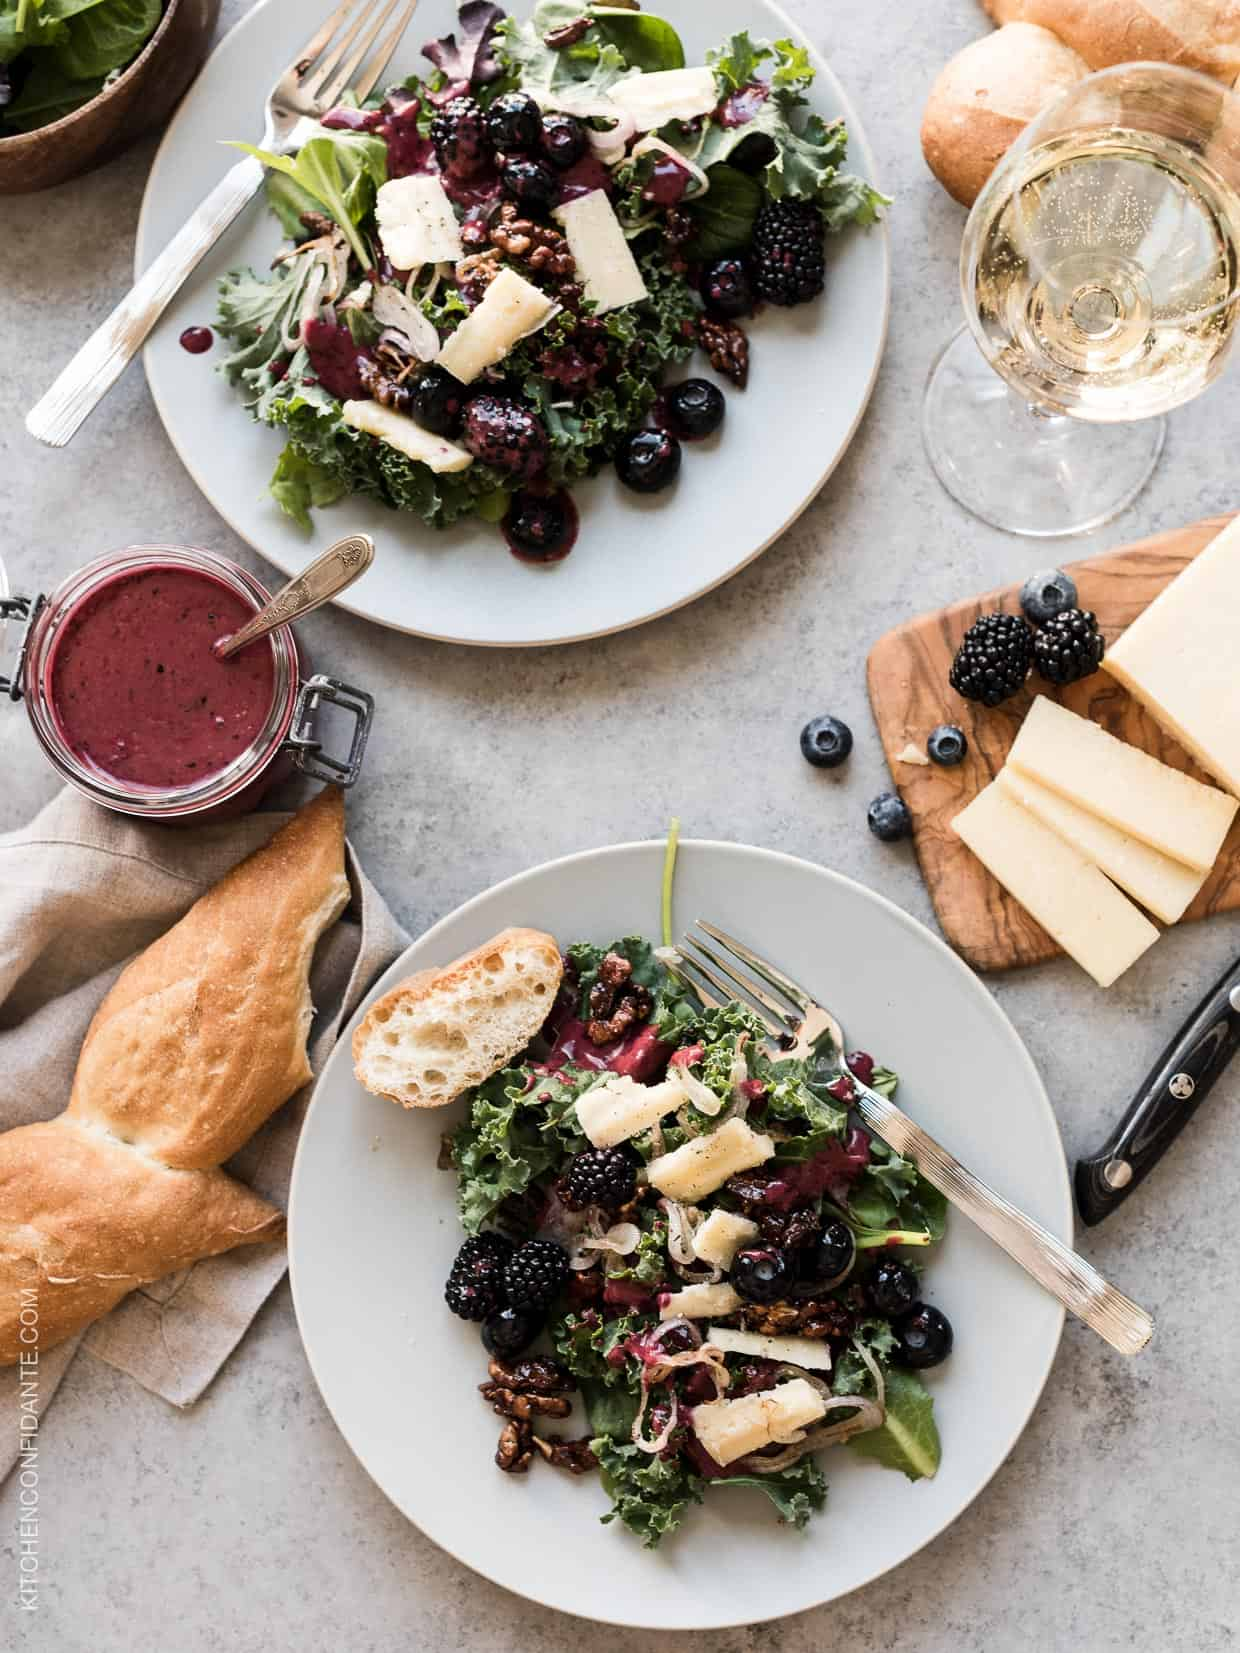 Blackberry and Blueberry Kale Salad with Aged Havarti -- If you love wine and cheese, you'll love pairing them together in this summer salad that goes well with anything that comes off the grill. Chardonnay in the berry wine dressing swirls through each bite of hearty kale and Aged Havarti by @CastelloUSA. #SavortheSummer #ad